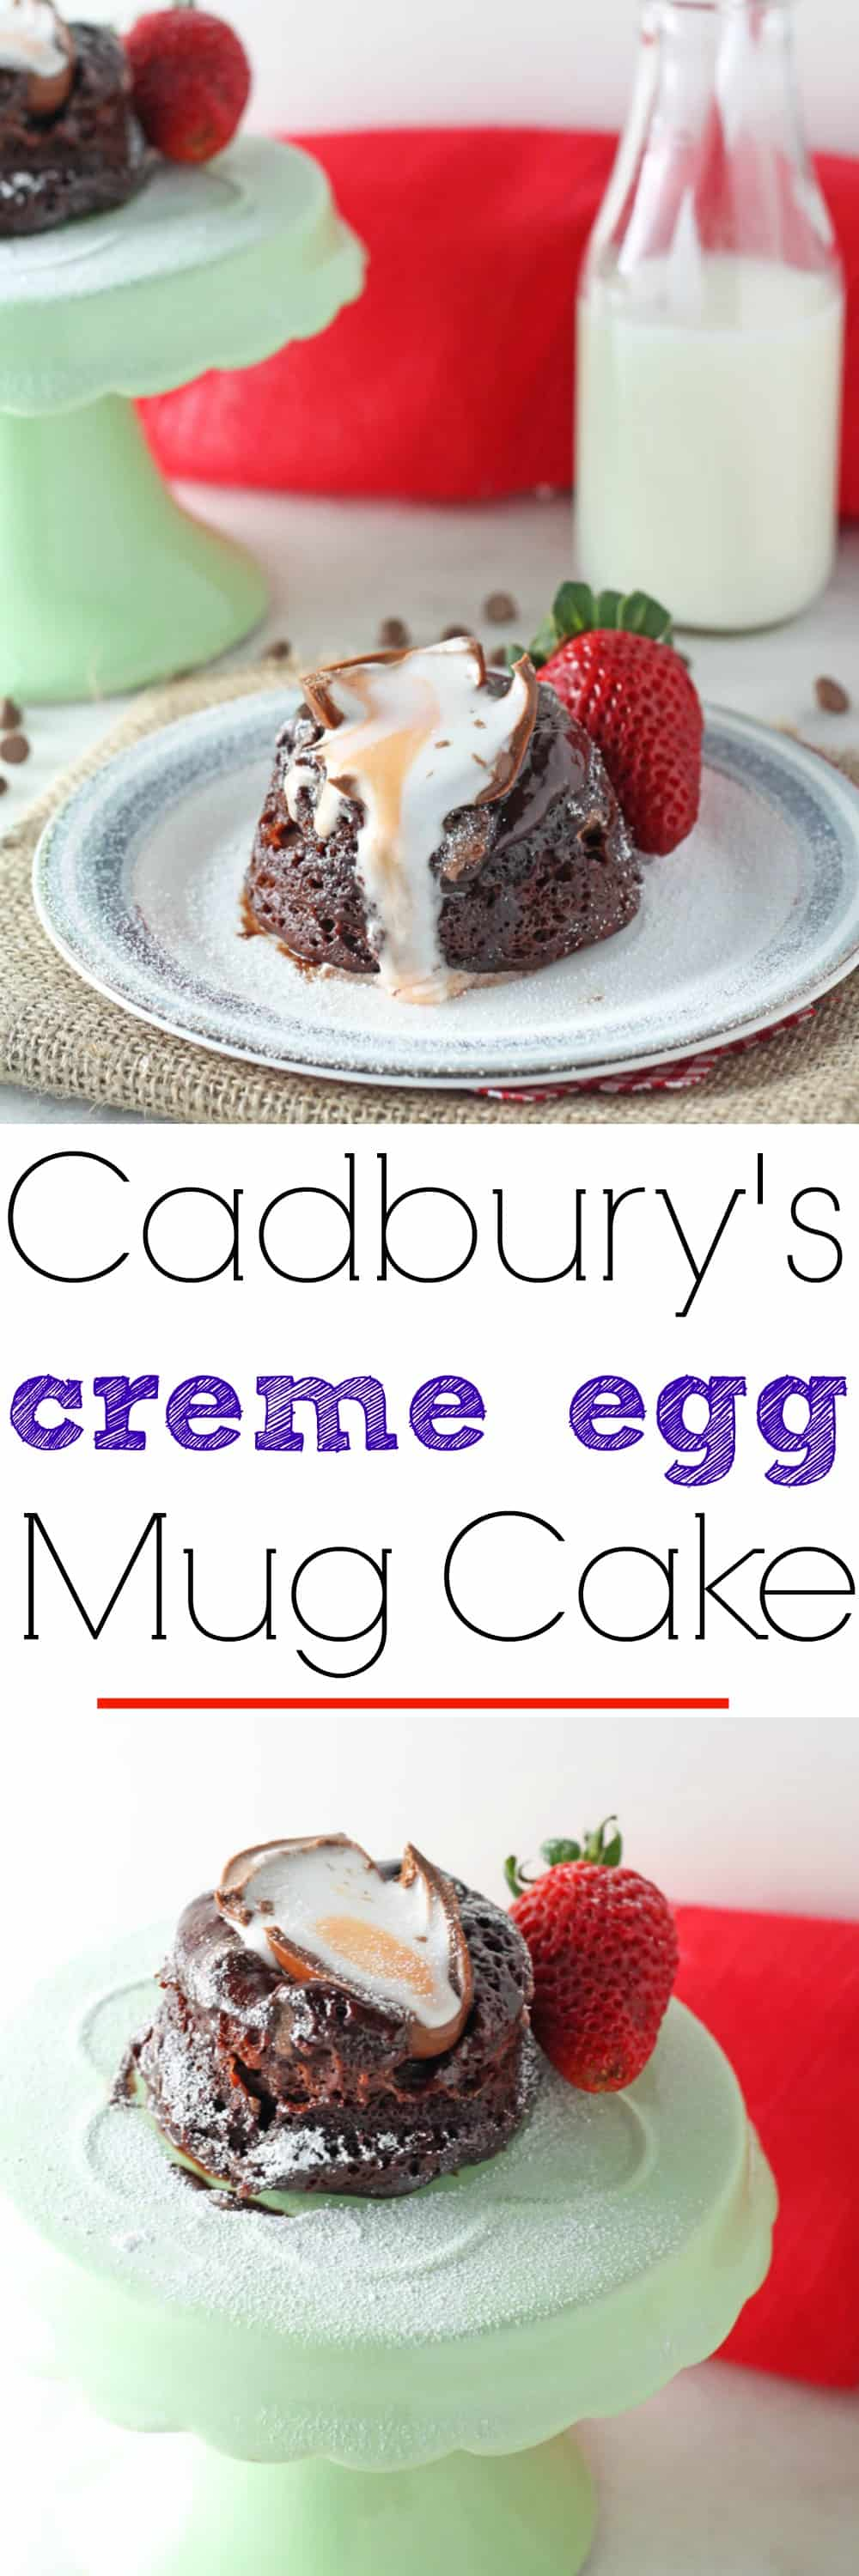 The BEST Chocolate Mug Cake recipe out there!